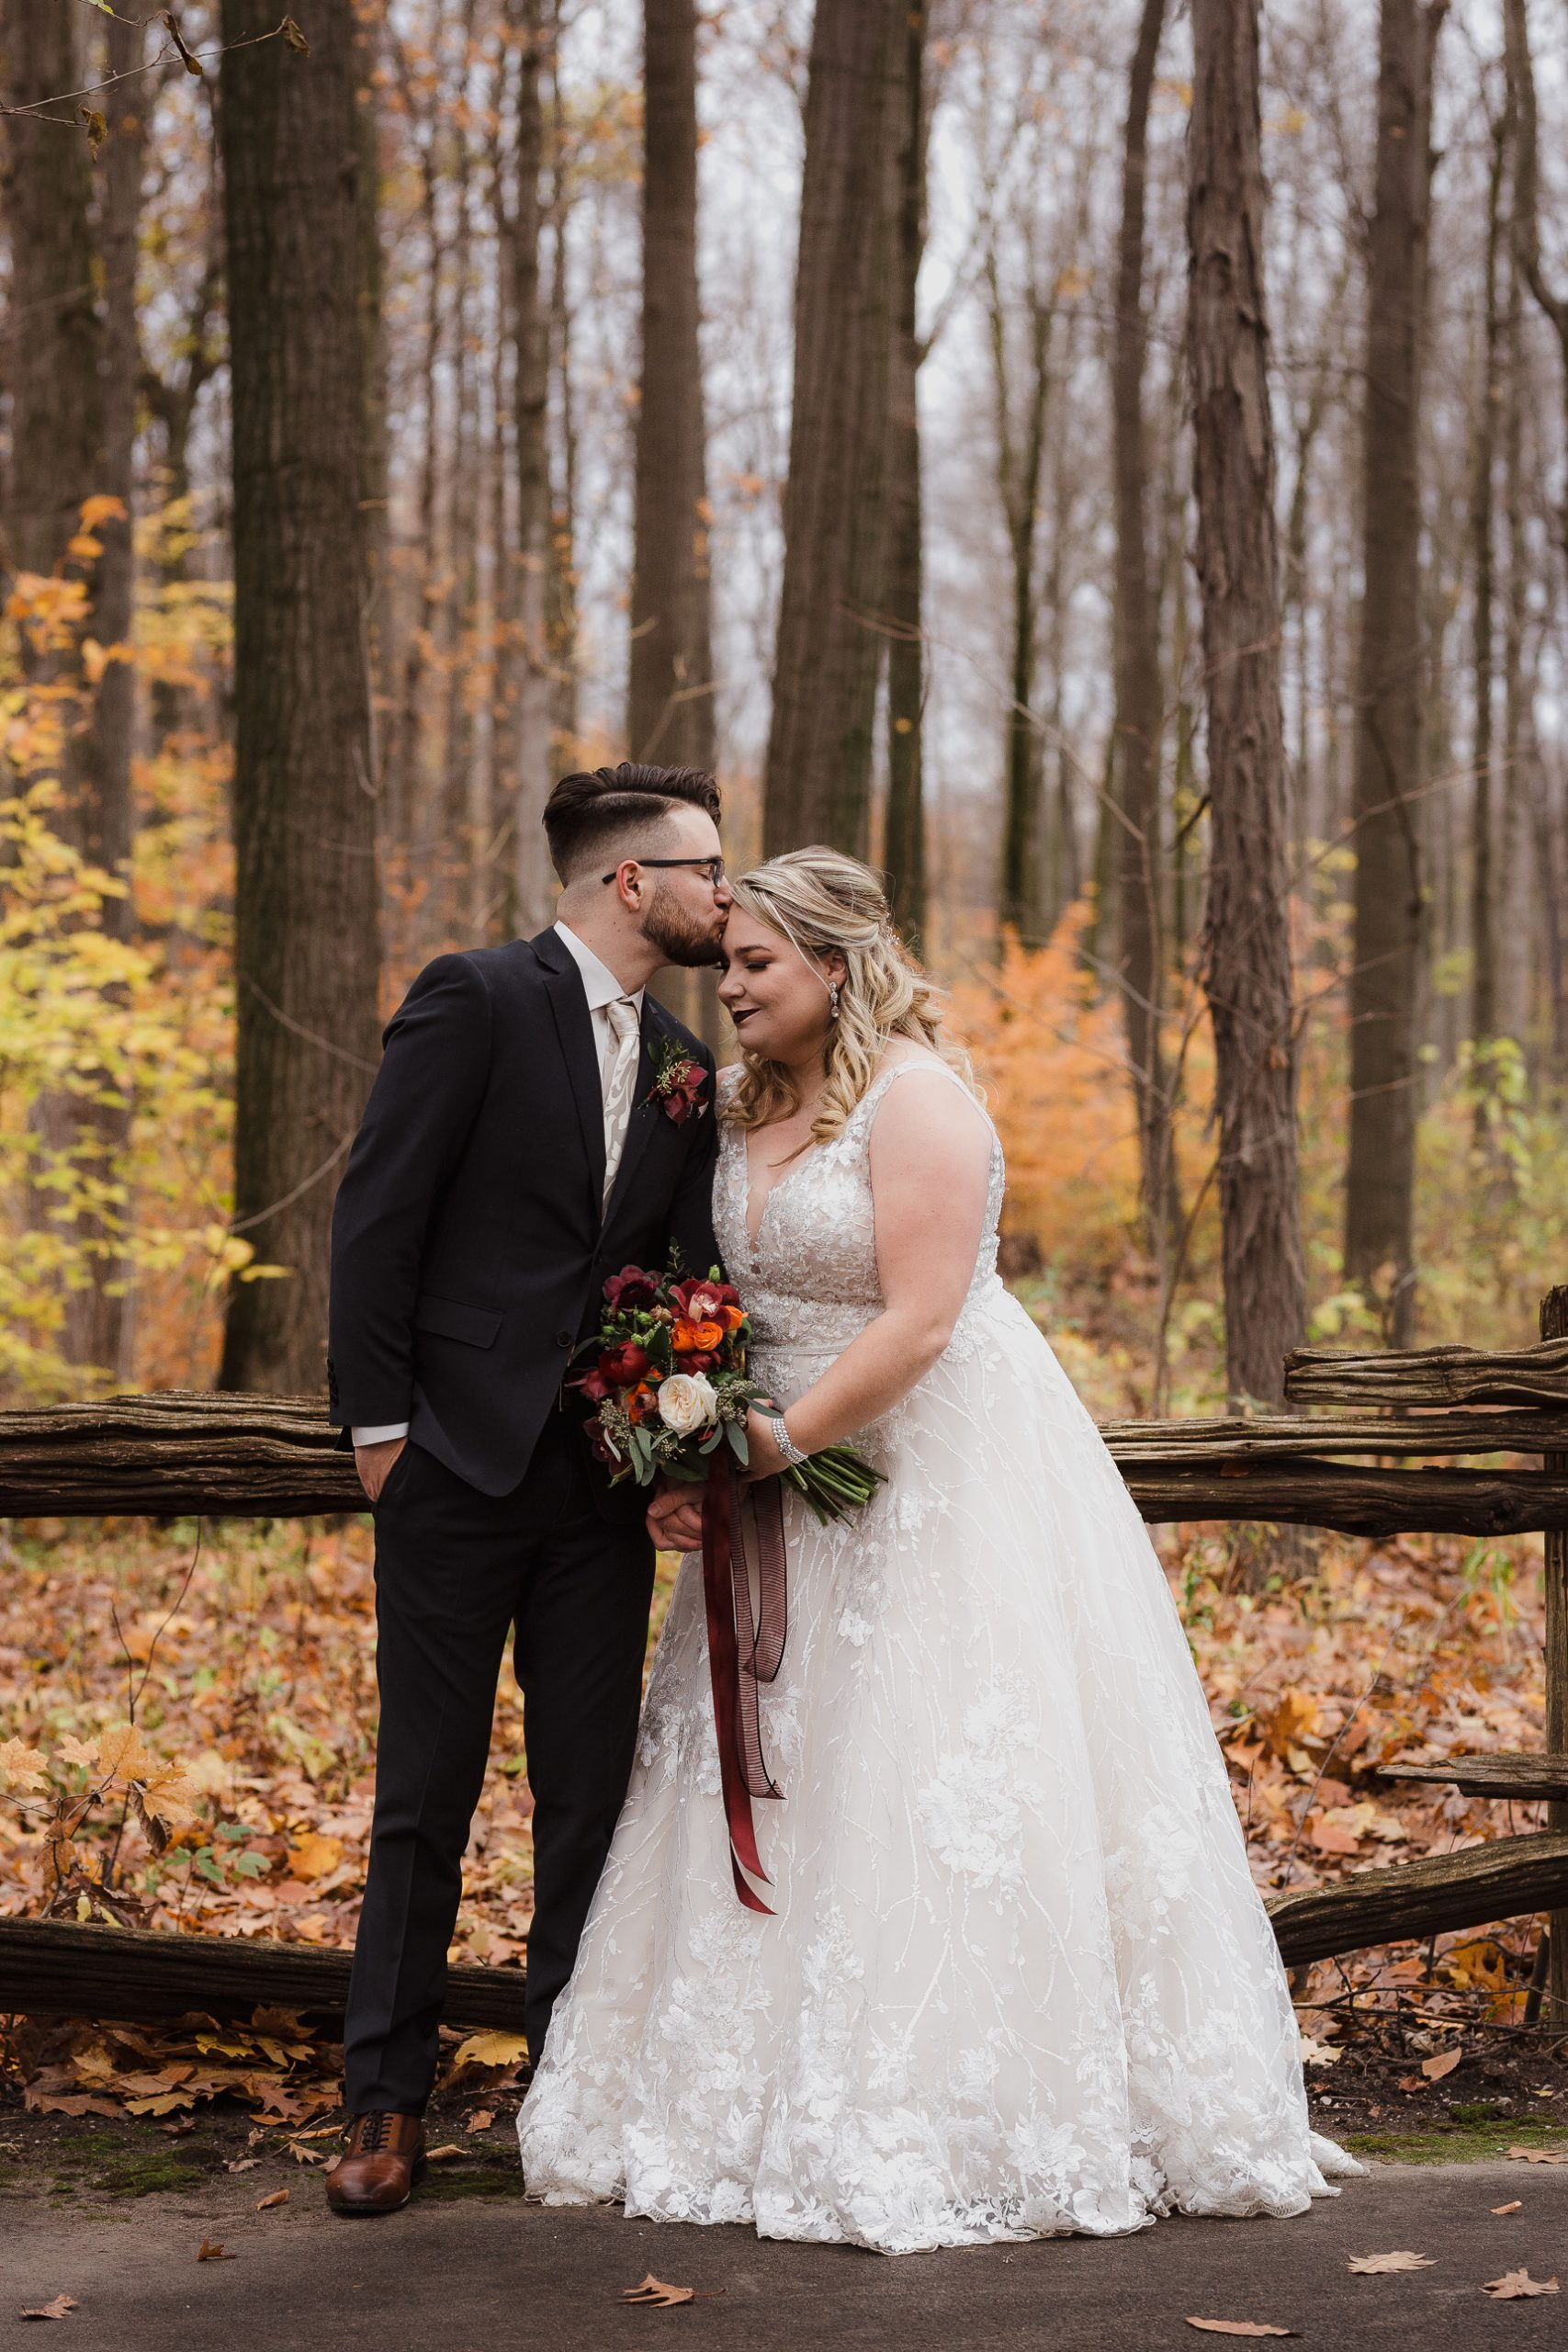 Wedding photo bride and groom portraits hair dress bouquet fall autumn colours leaves trees